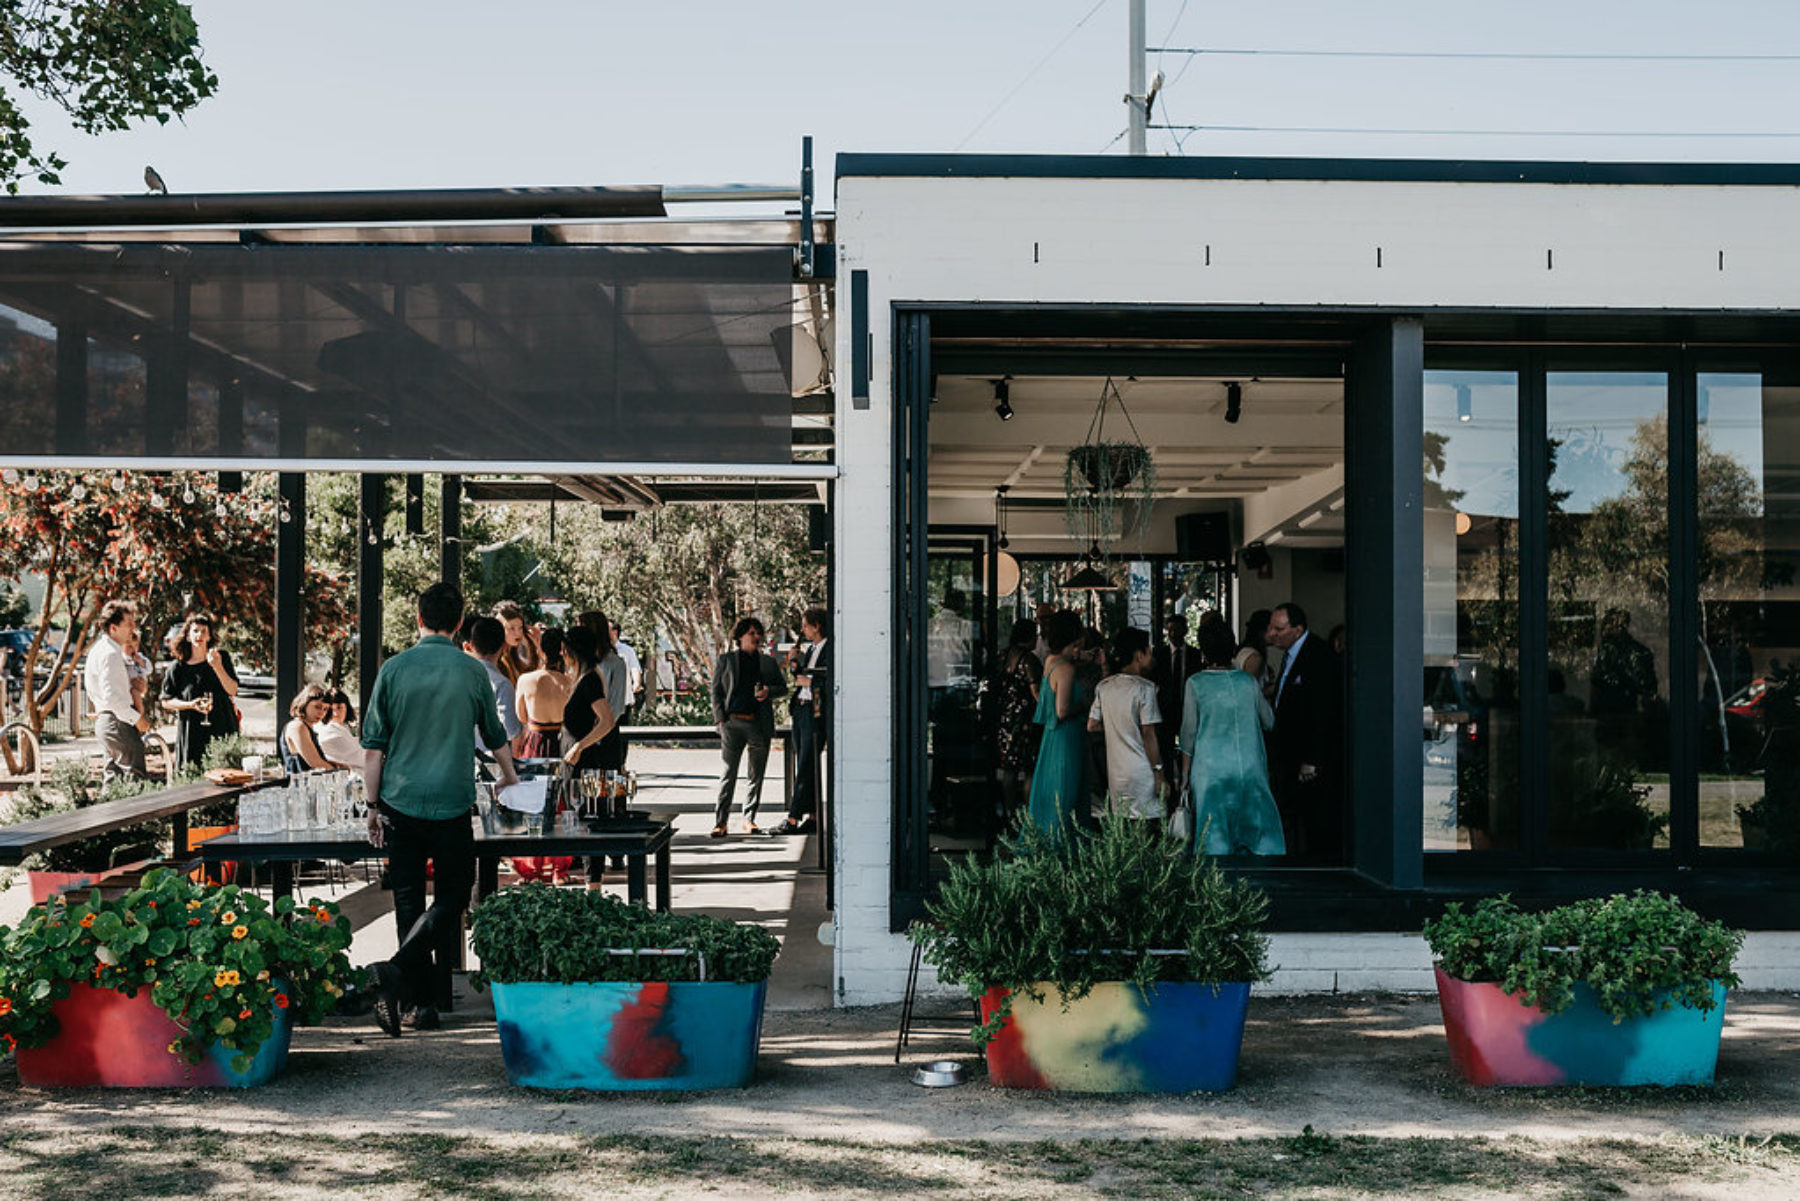 Park St. Melbourne cafe wedding venue Carlton